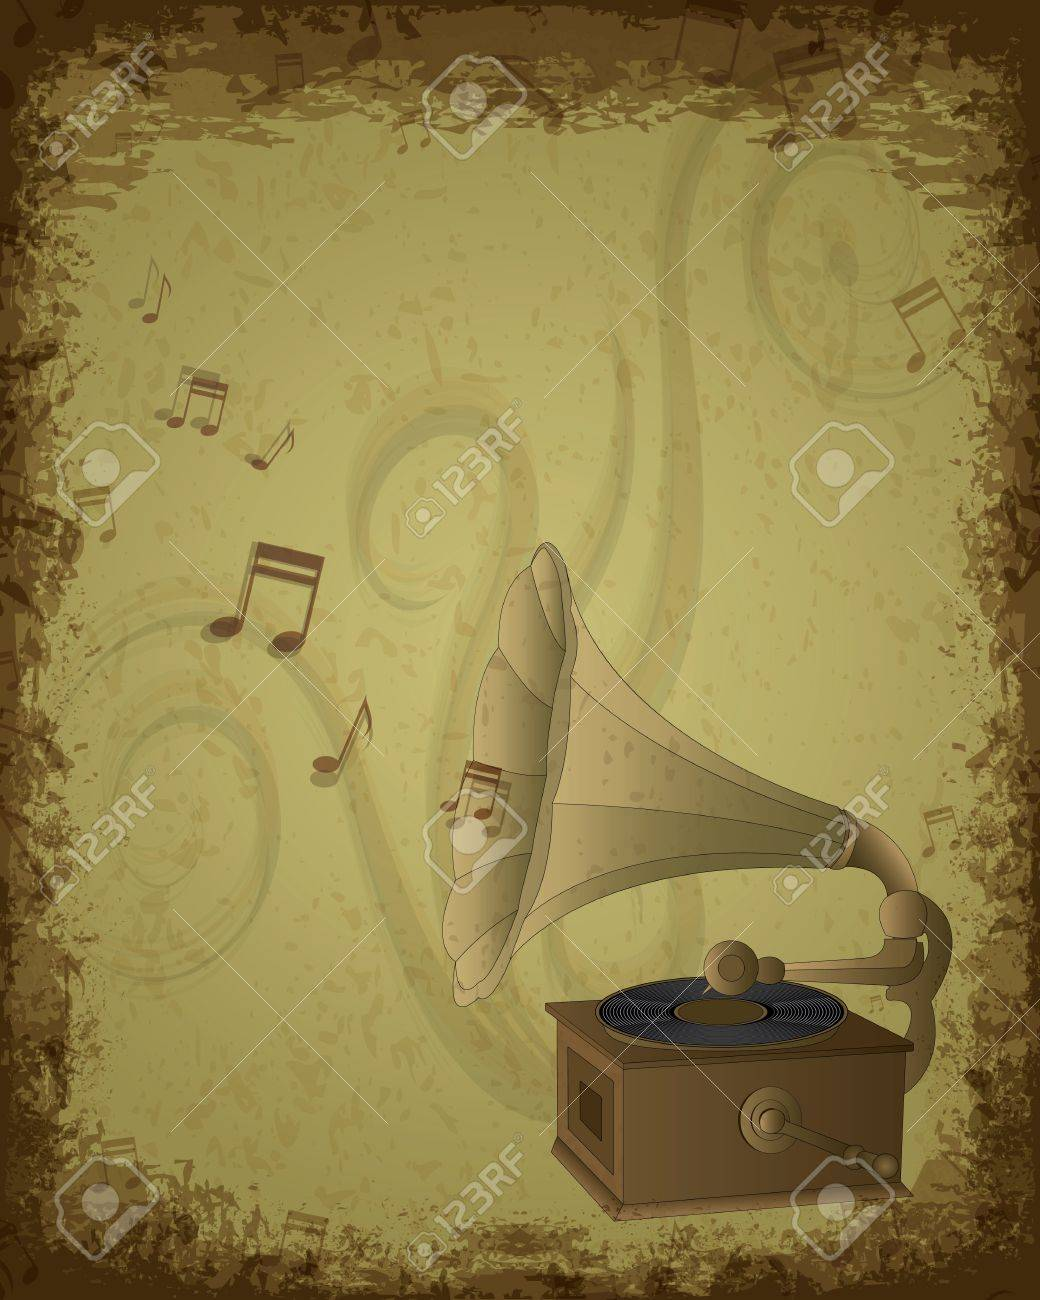 Music background - retro gramophone on eroded grunge paper Stock Vector - 10390590